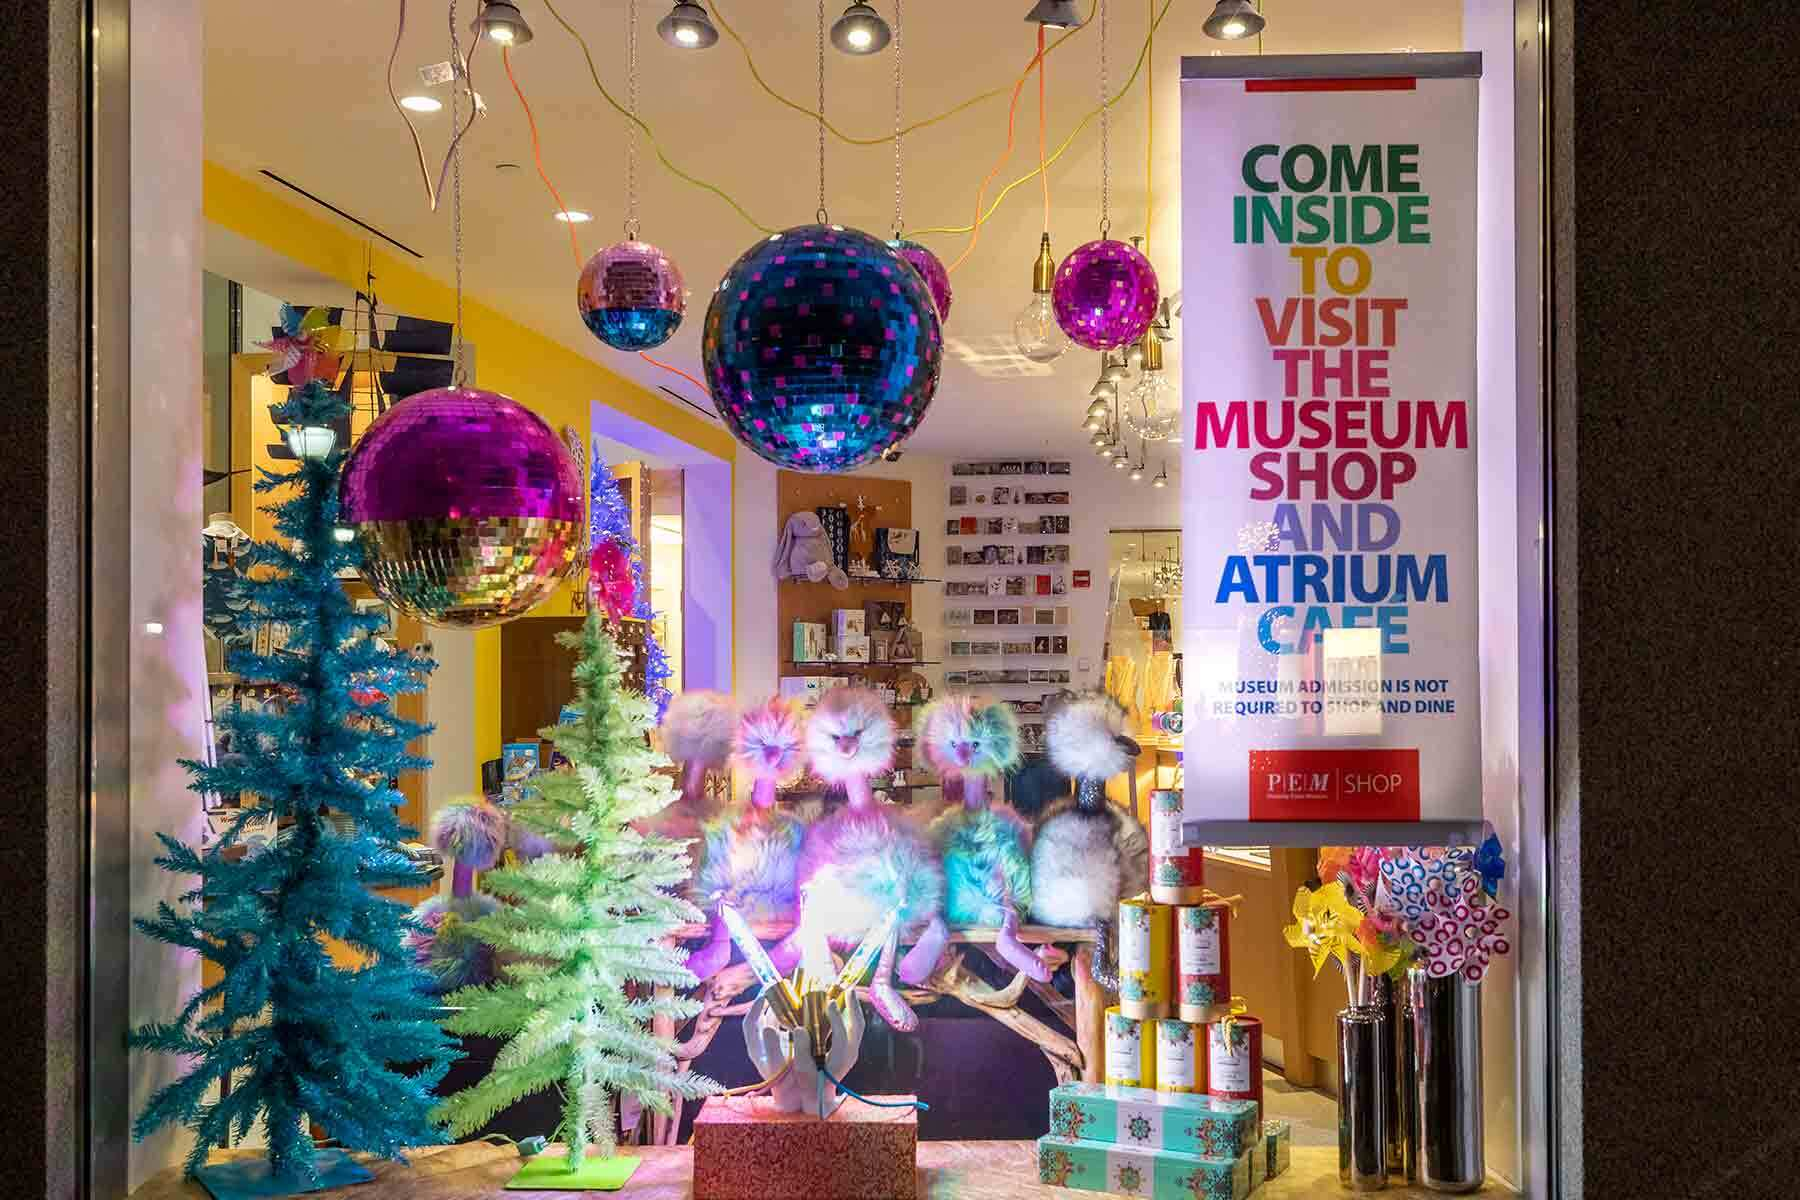 The PEM shop windows decorated with ornaments